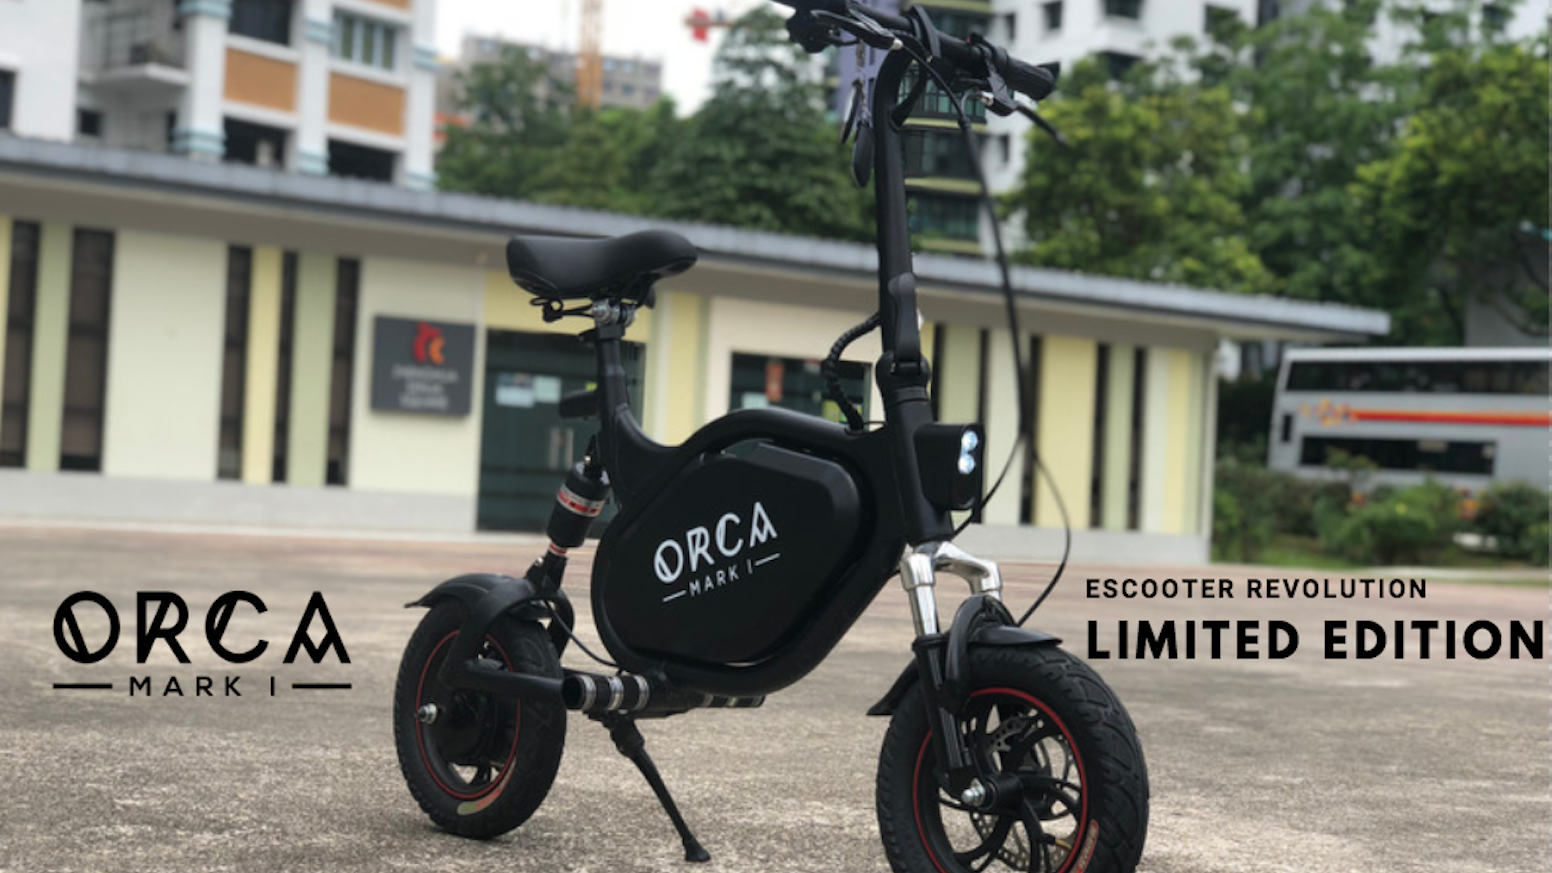 We want to create an electric scooter for every purpose. Something convenient for daily commute. Use it for work, travel, school, fun!